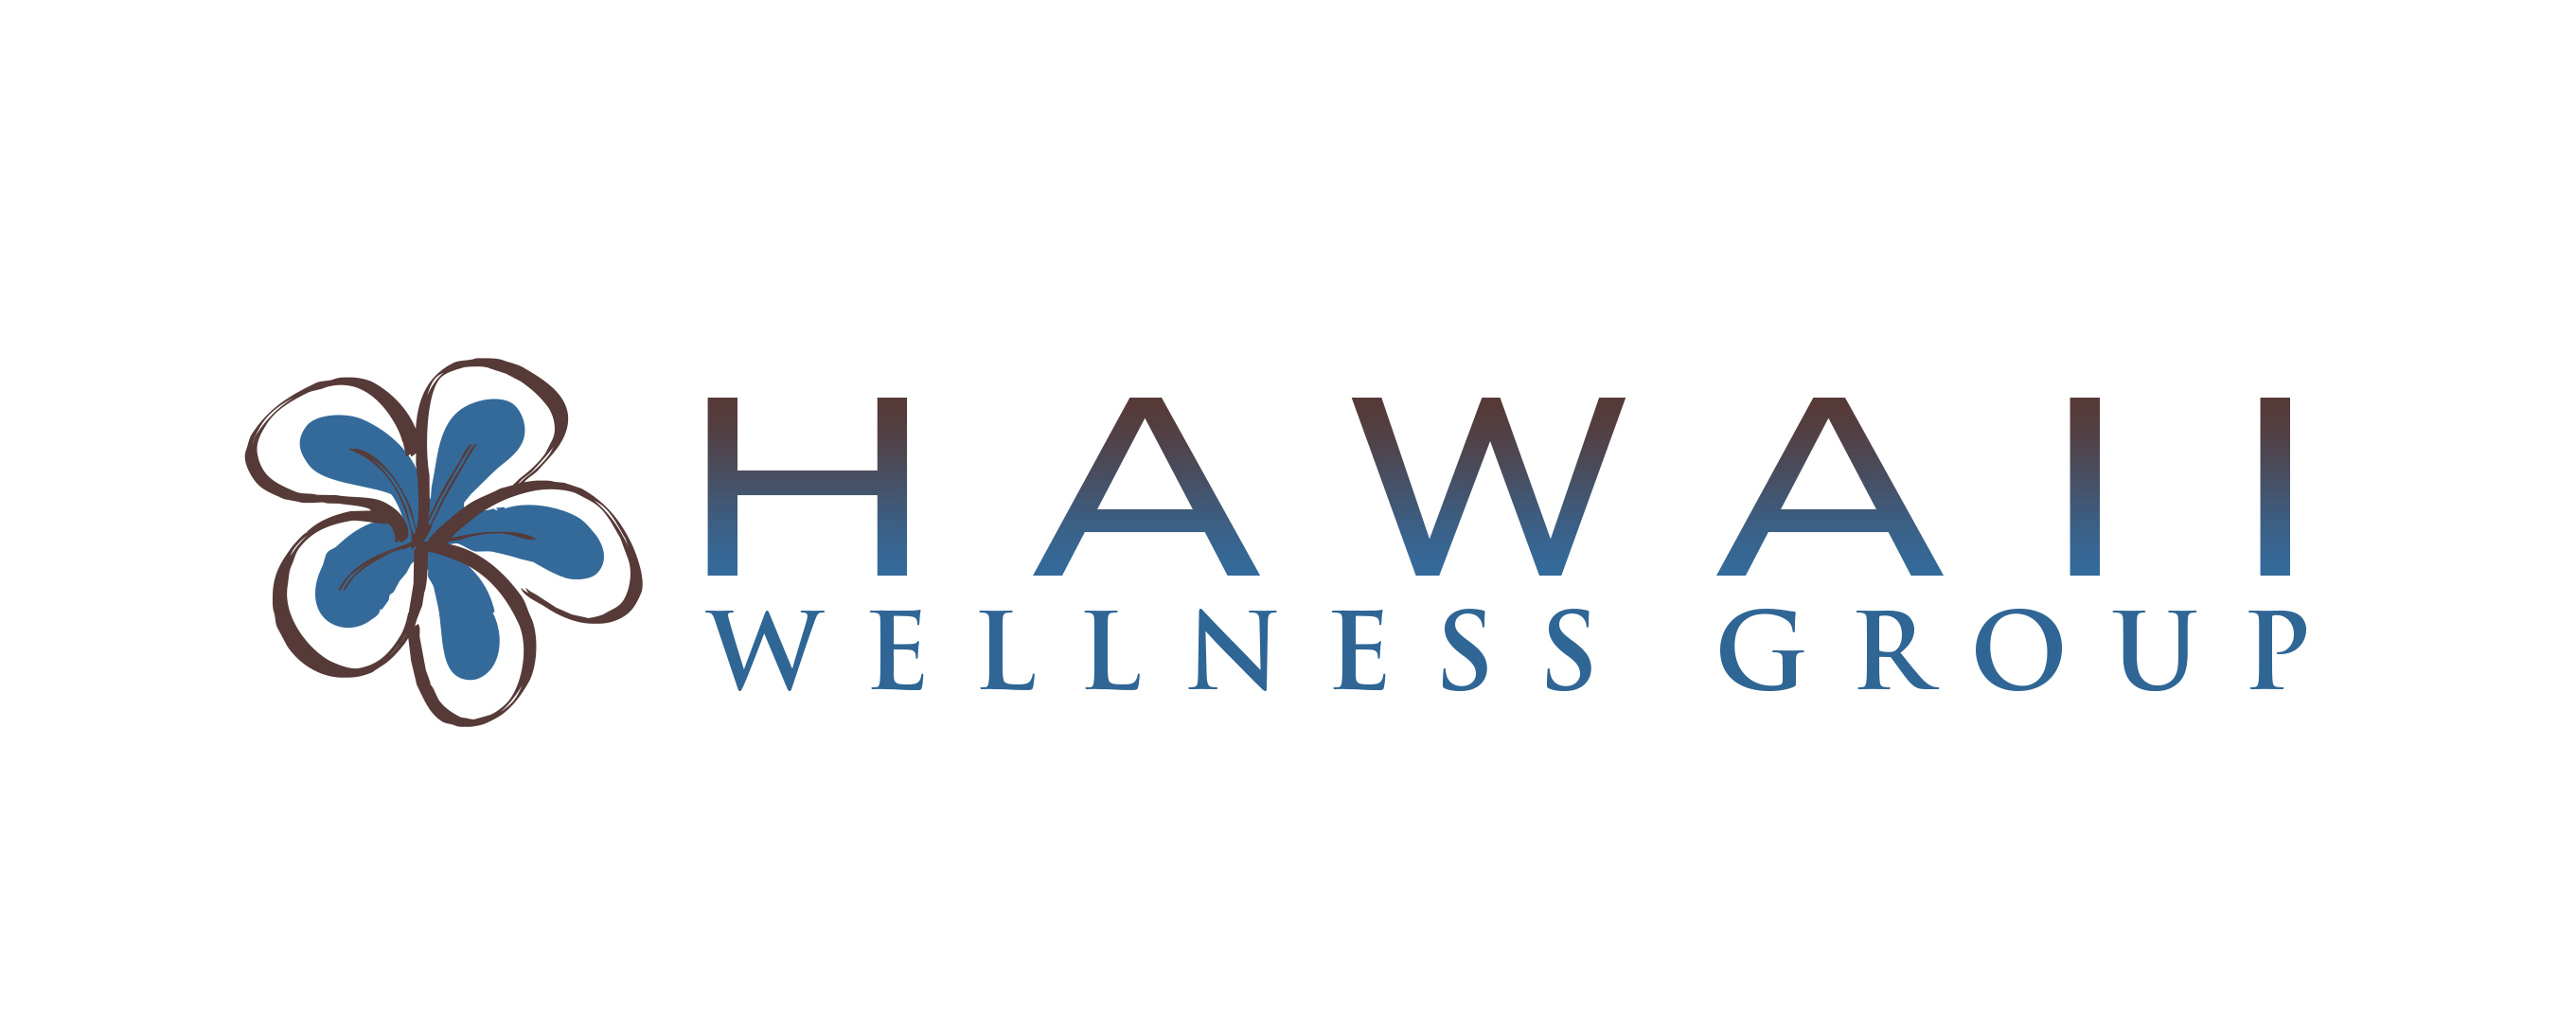 Hawaii Wellness Group